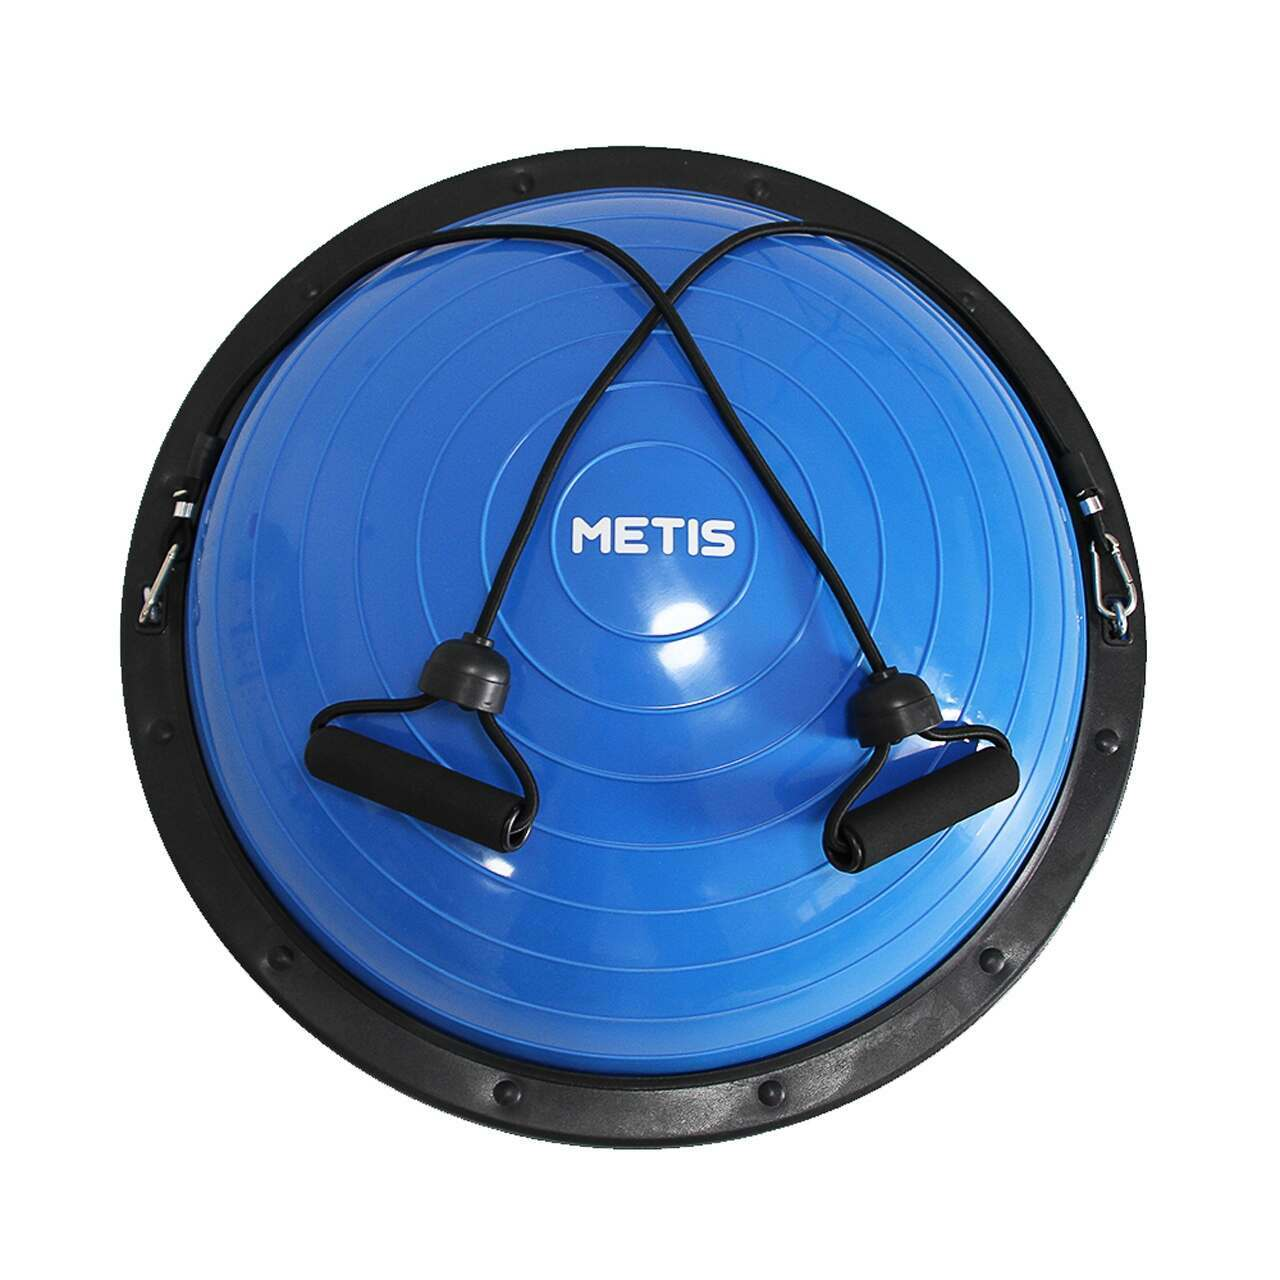 METIS Balance Ball/Trainer